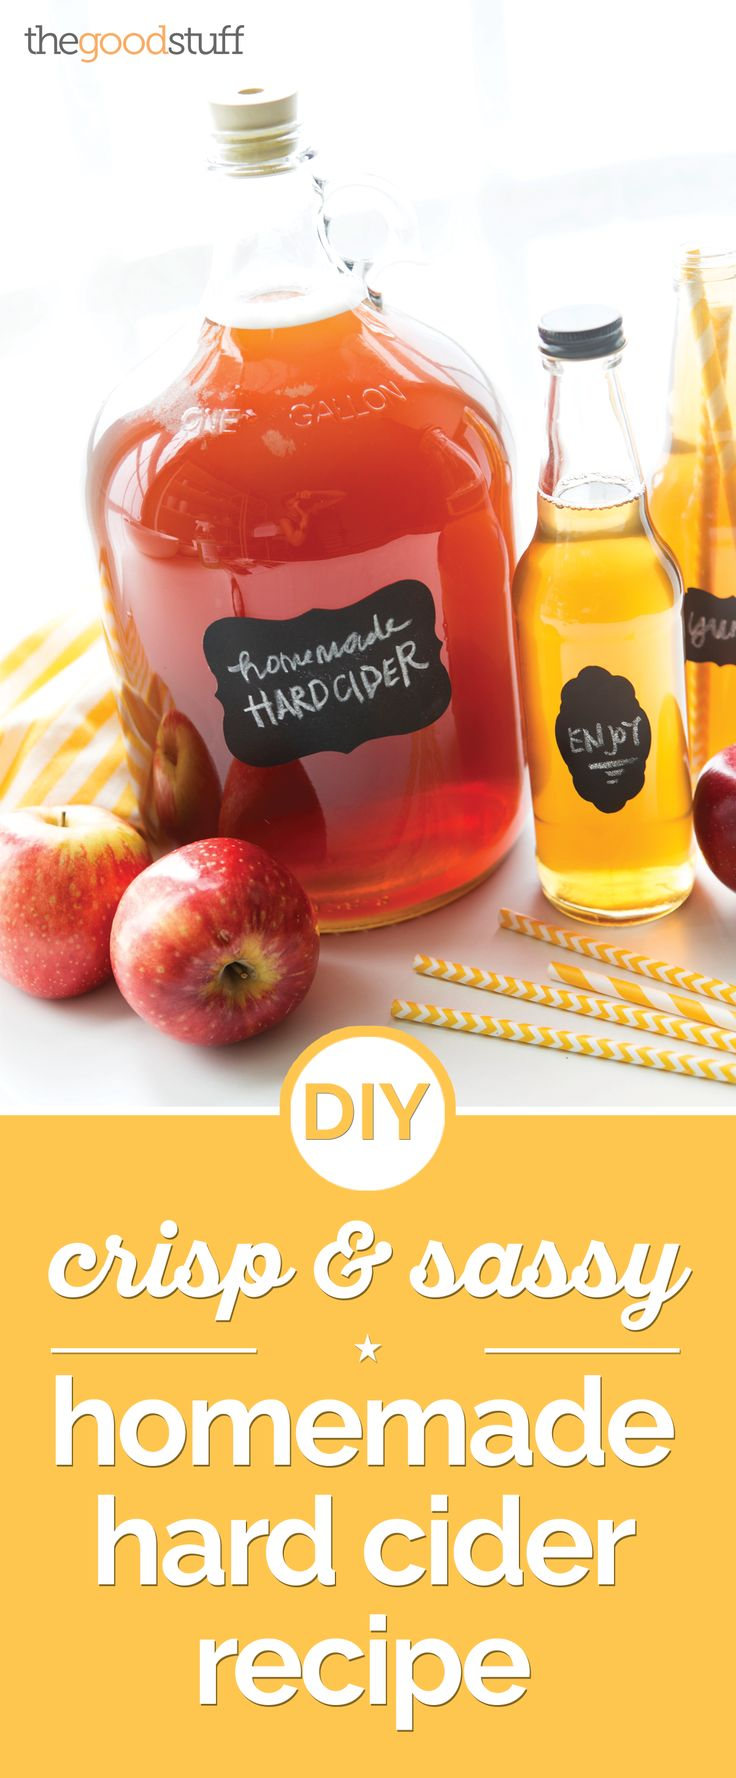 DIY: Crisp & Sassy Homemade Hard Cider Recipe